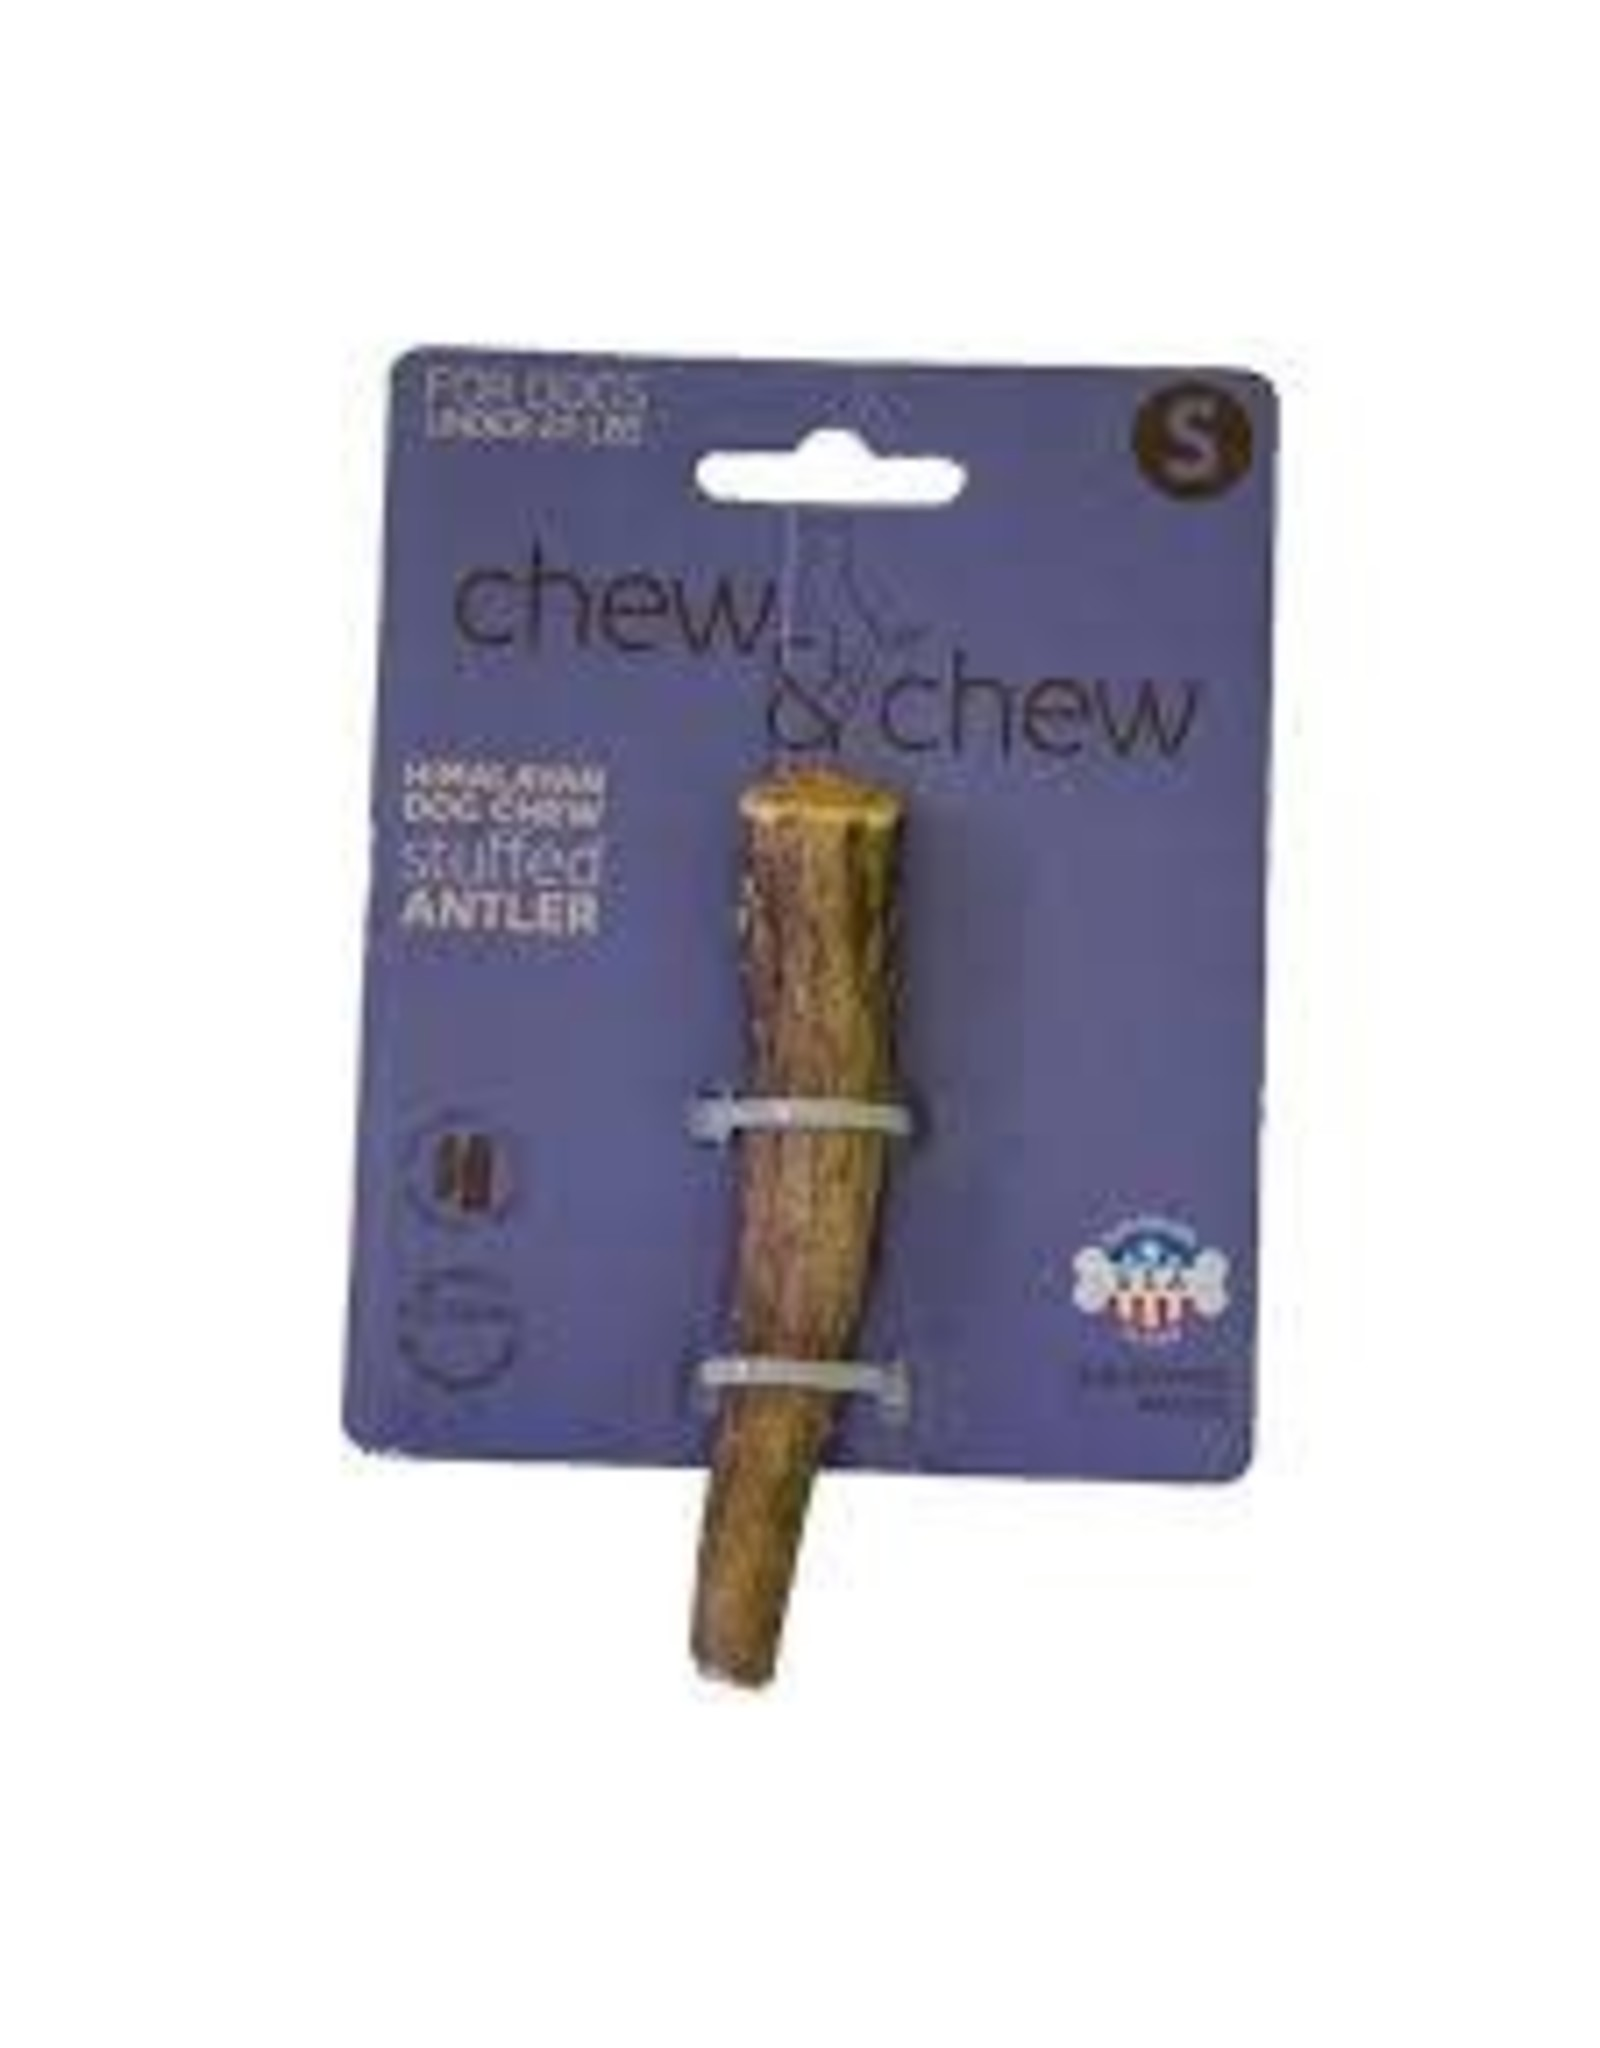 HIMALAYAN DOG CHEW HIMALAYAN ANTLER STUFFED MD *DISC